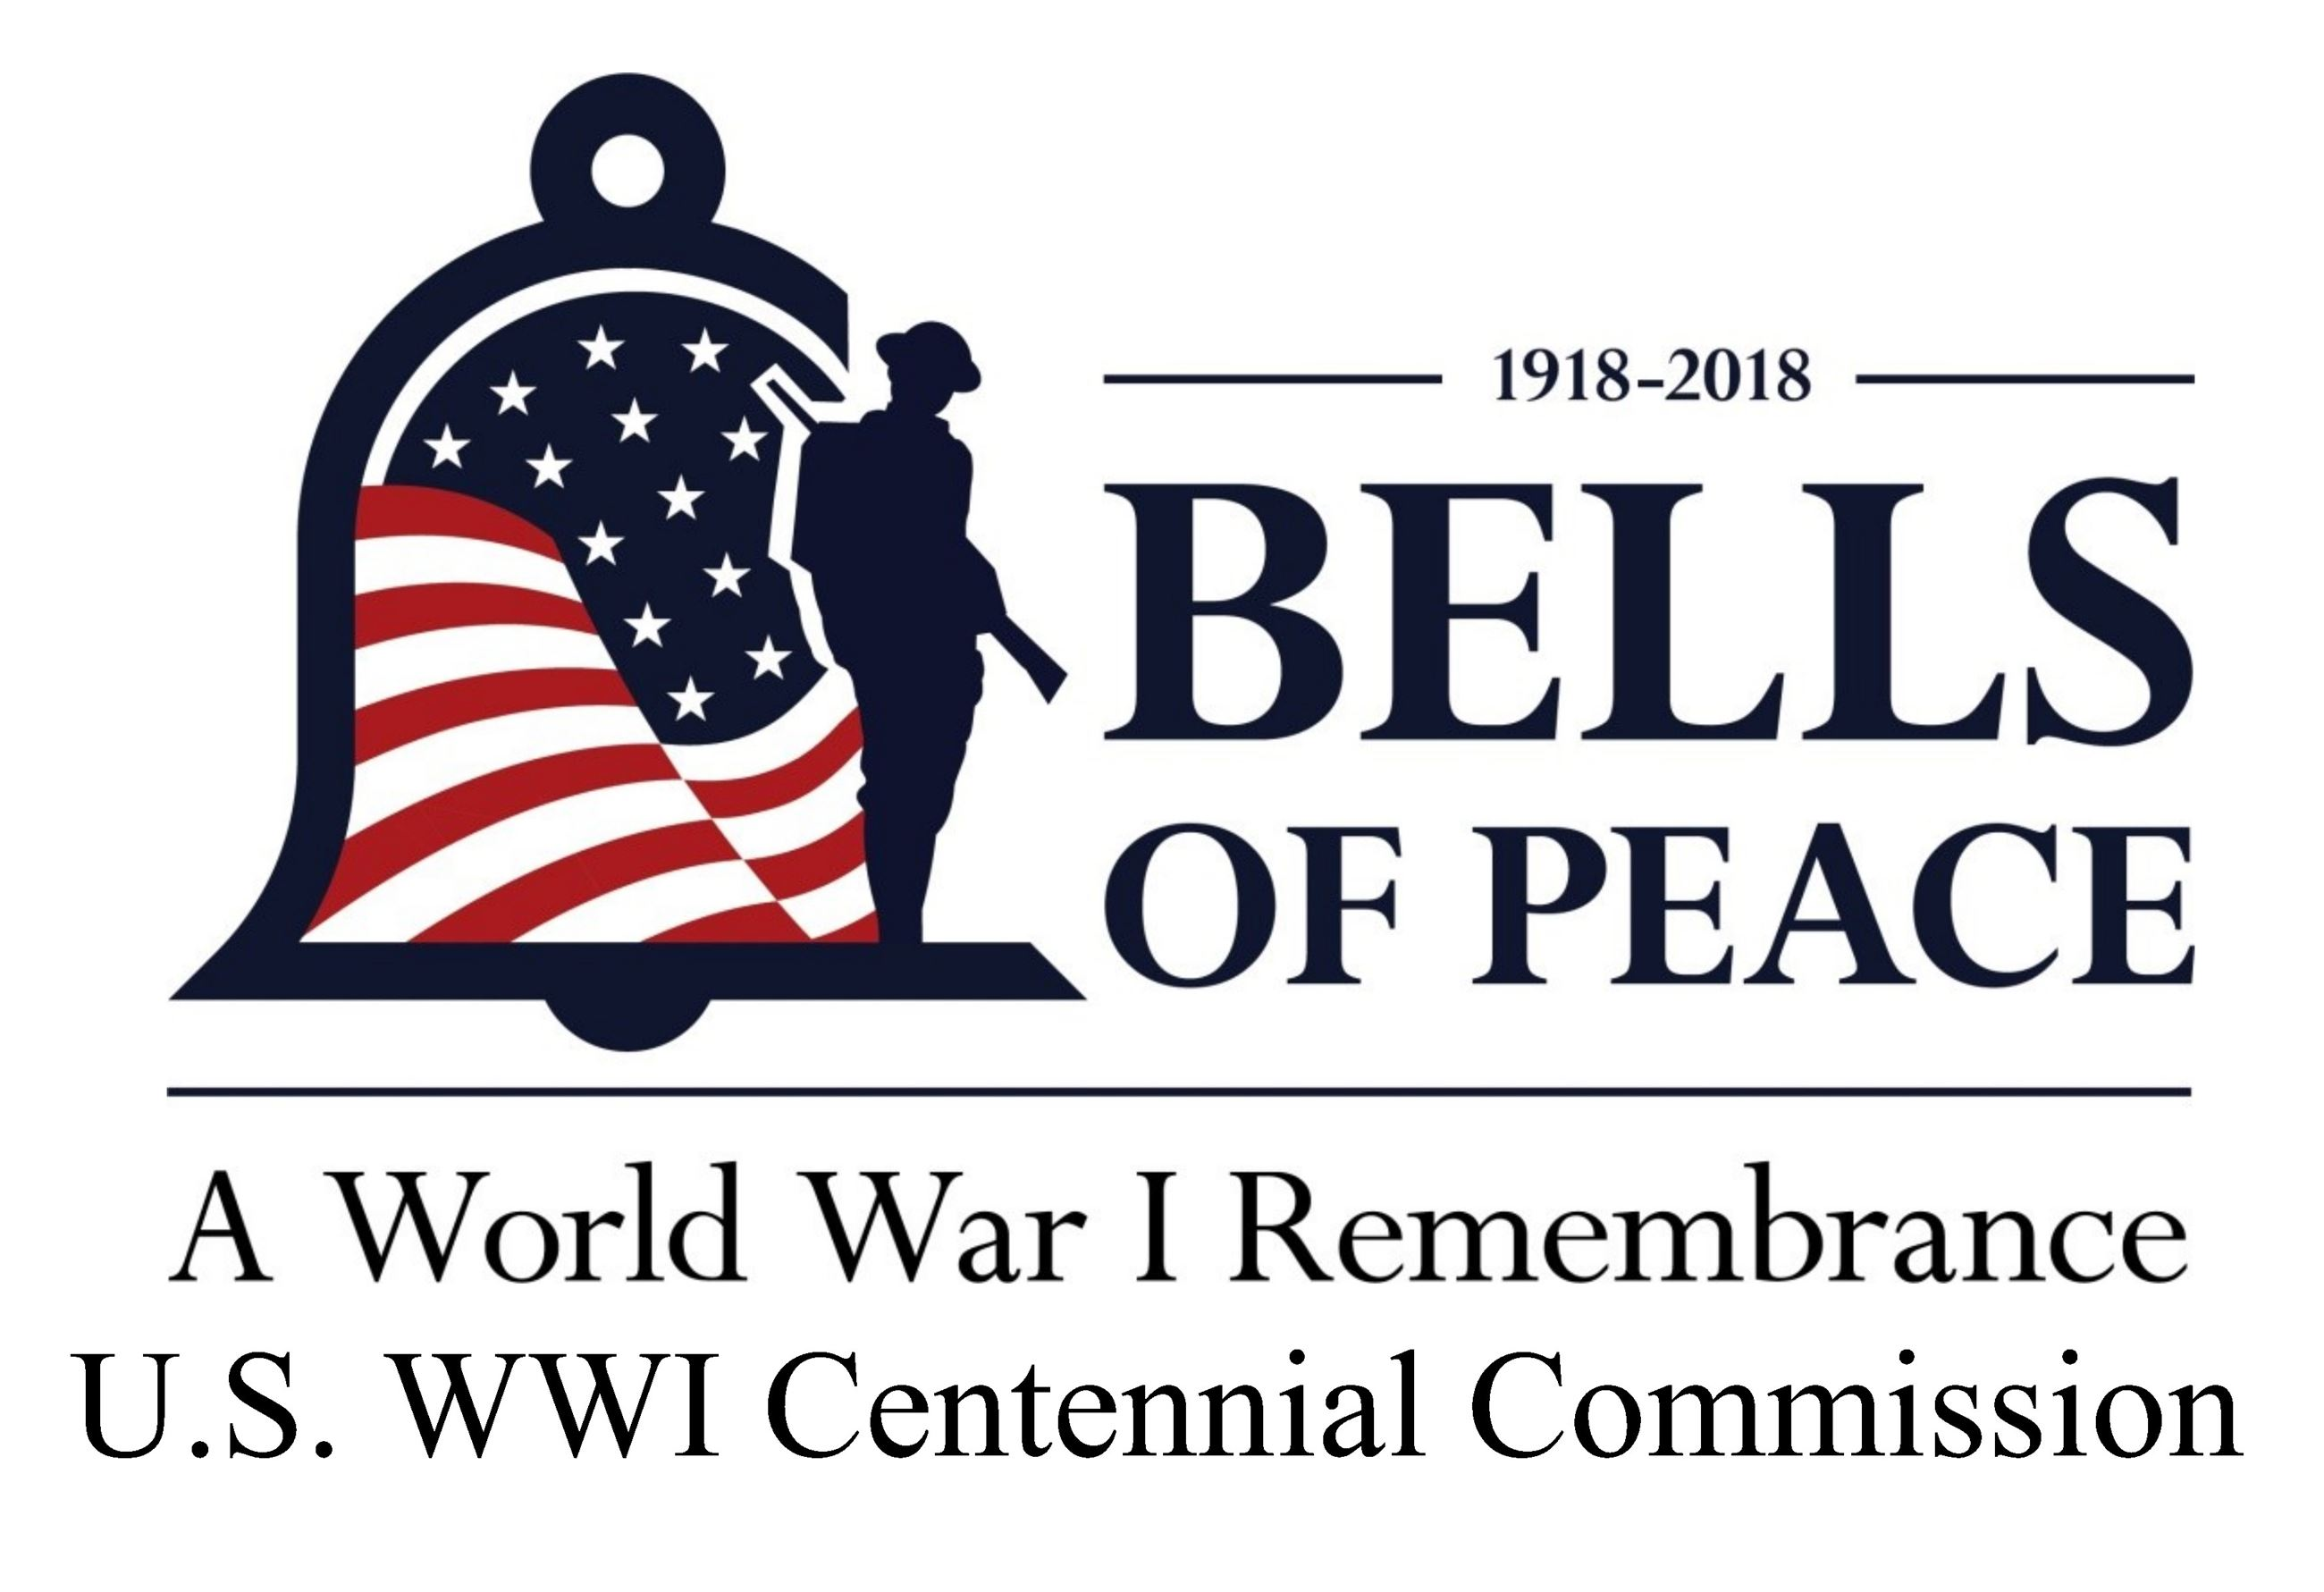 Bells of Peace - A World War I Remembrance U.S. WWI Centennial Commission